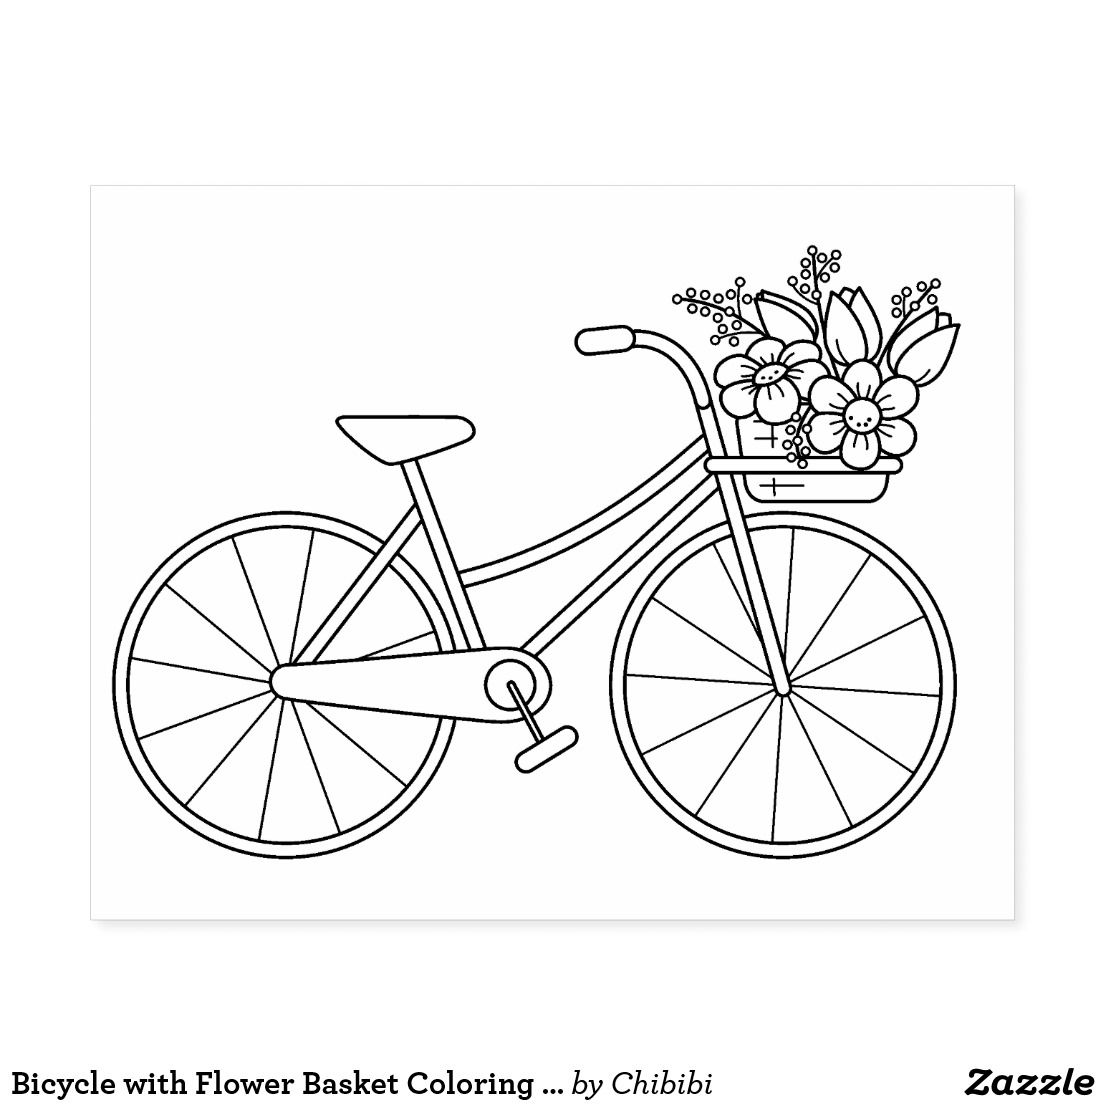 Bicycle with Flower Basket Coloring Page Rubber Stamp | Zazzle.com